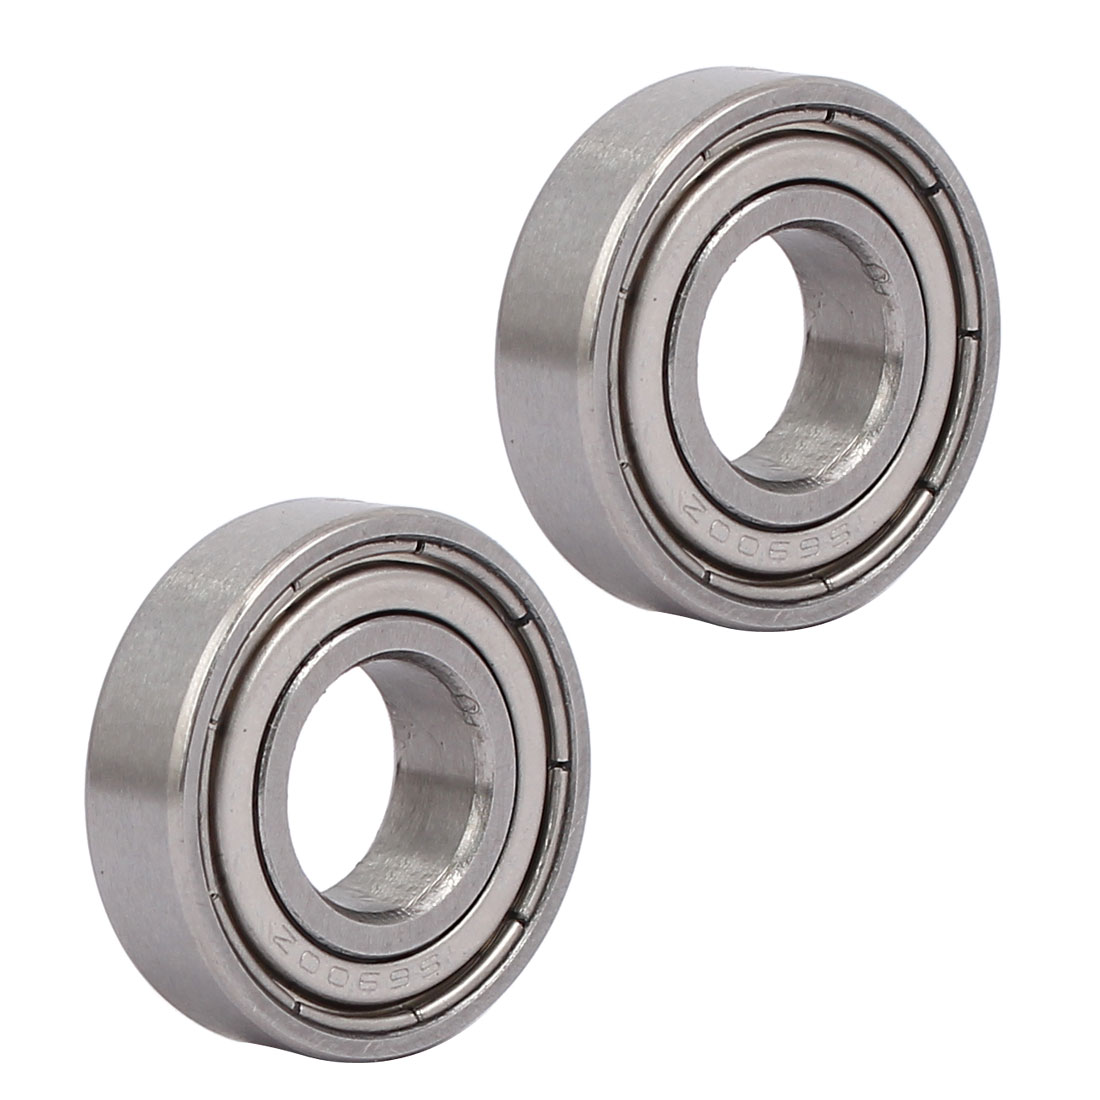 22mmx10mmx6mm 6900 Stainless Steel Shielded Deep Groove Ball Bearing 2pcs